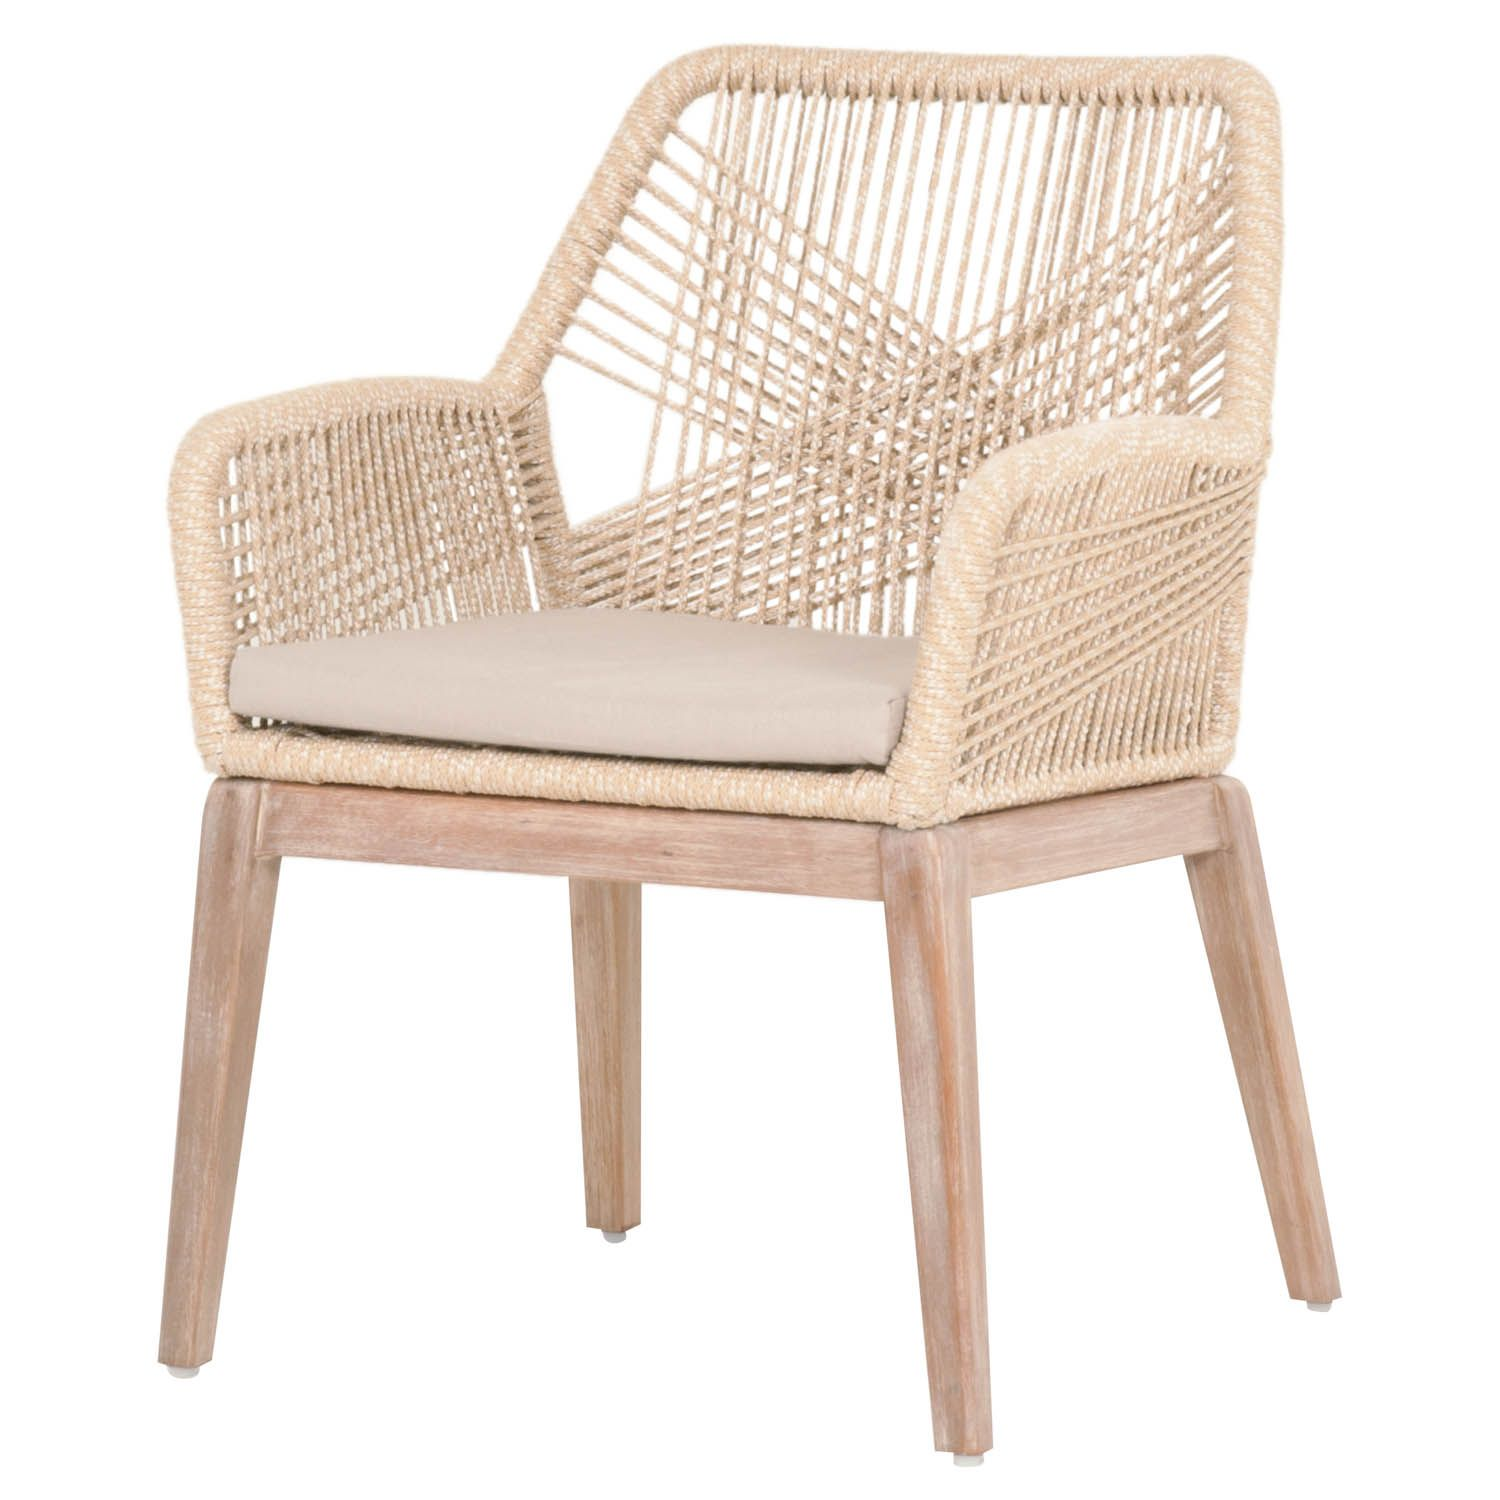 Set of Two Luca Sand Woven Rope Arm Chairs